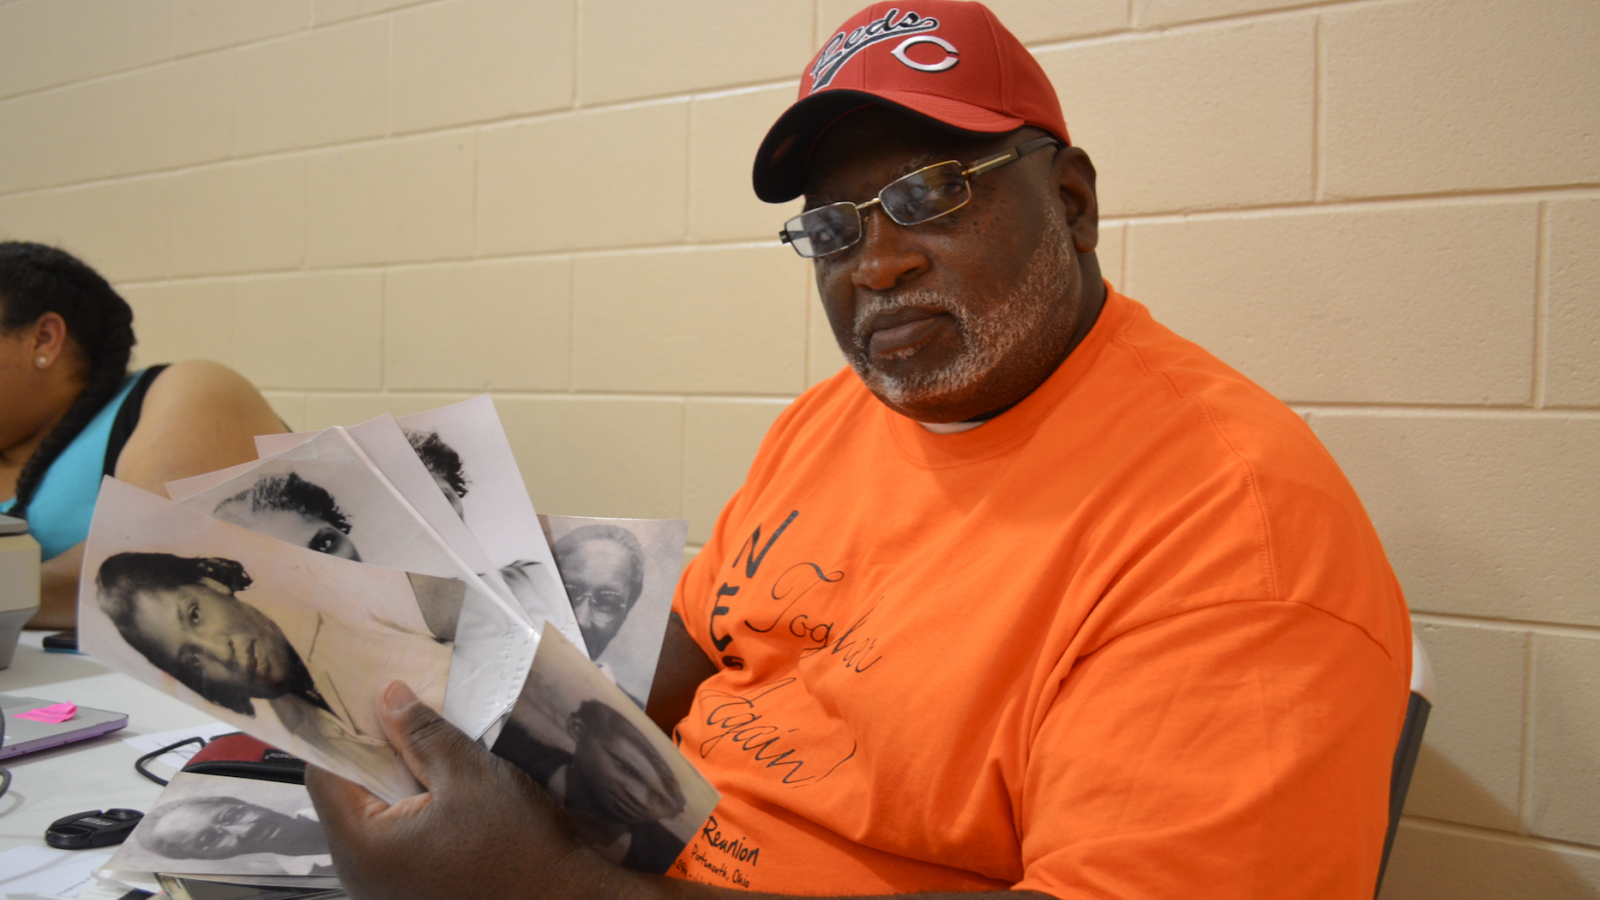 Roderick Wilson scans his family photographs at the North End Super Reunion, July 2017.